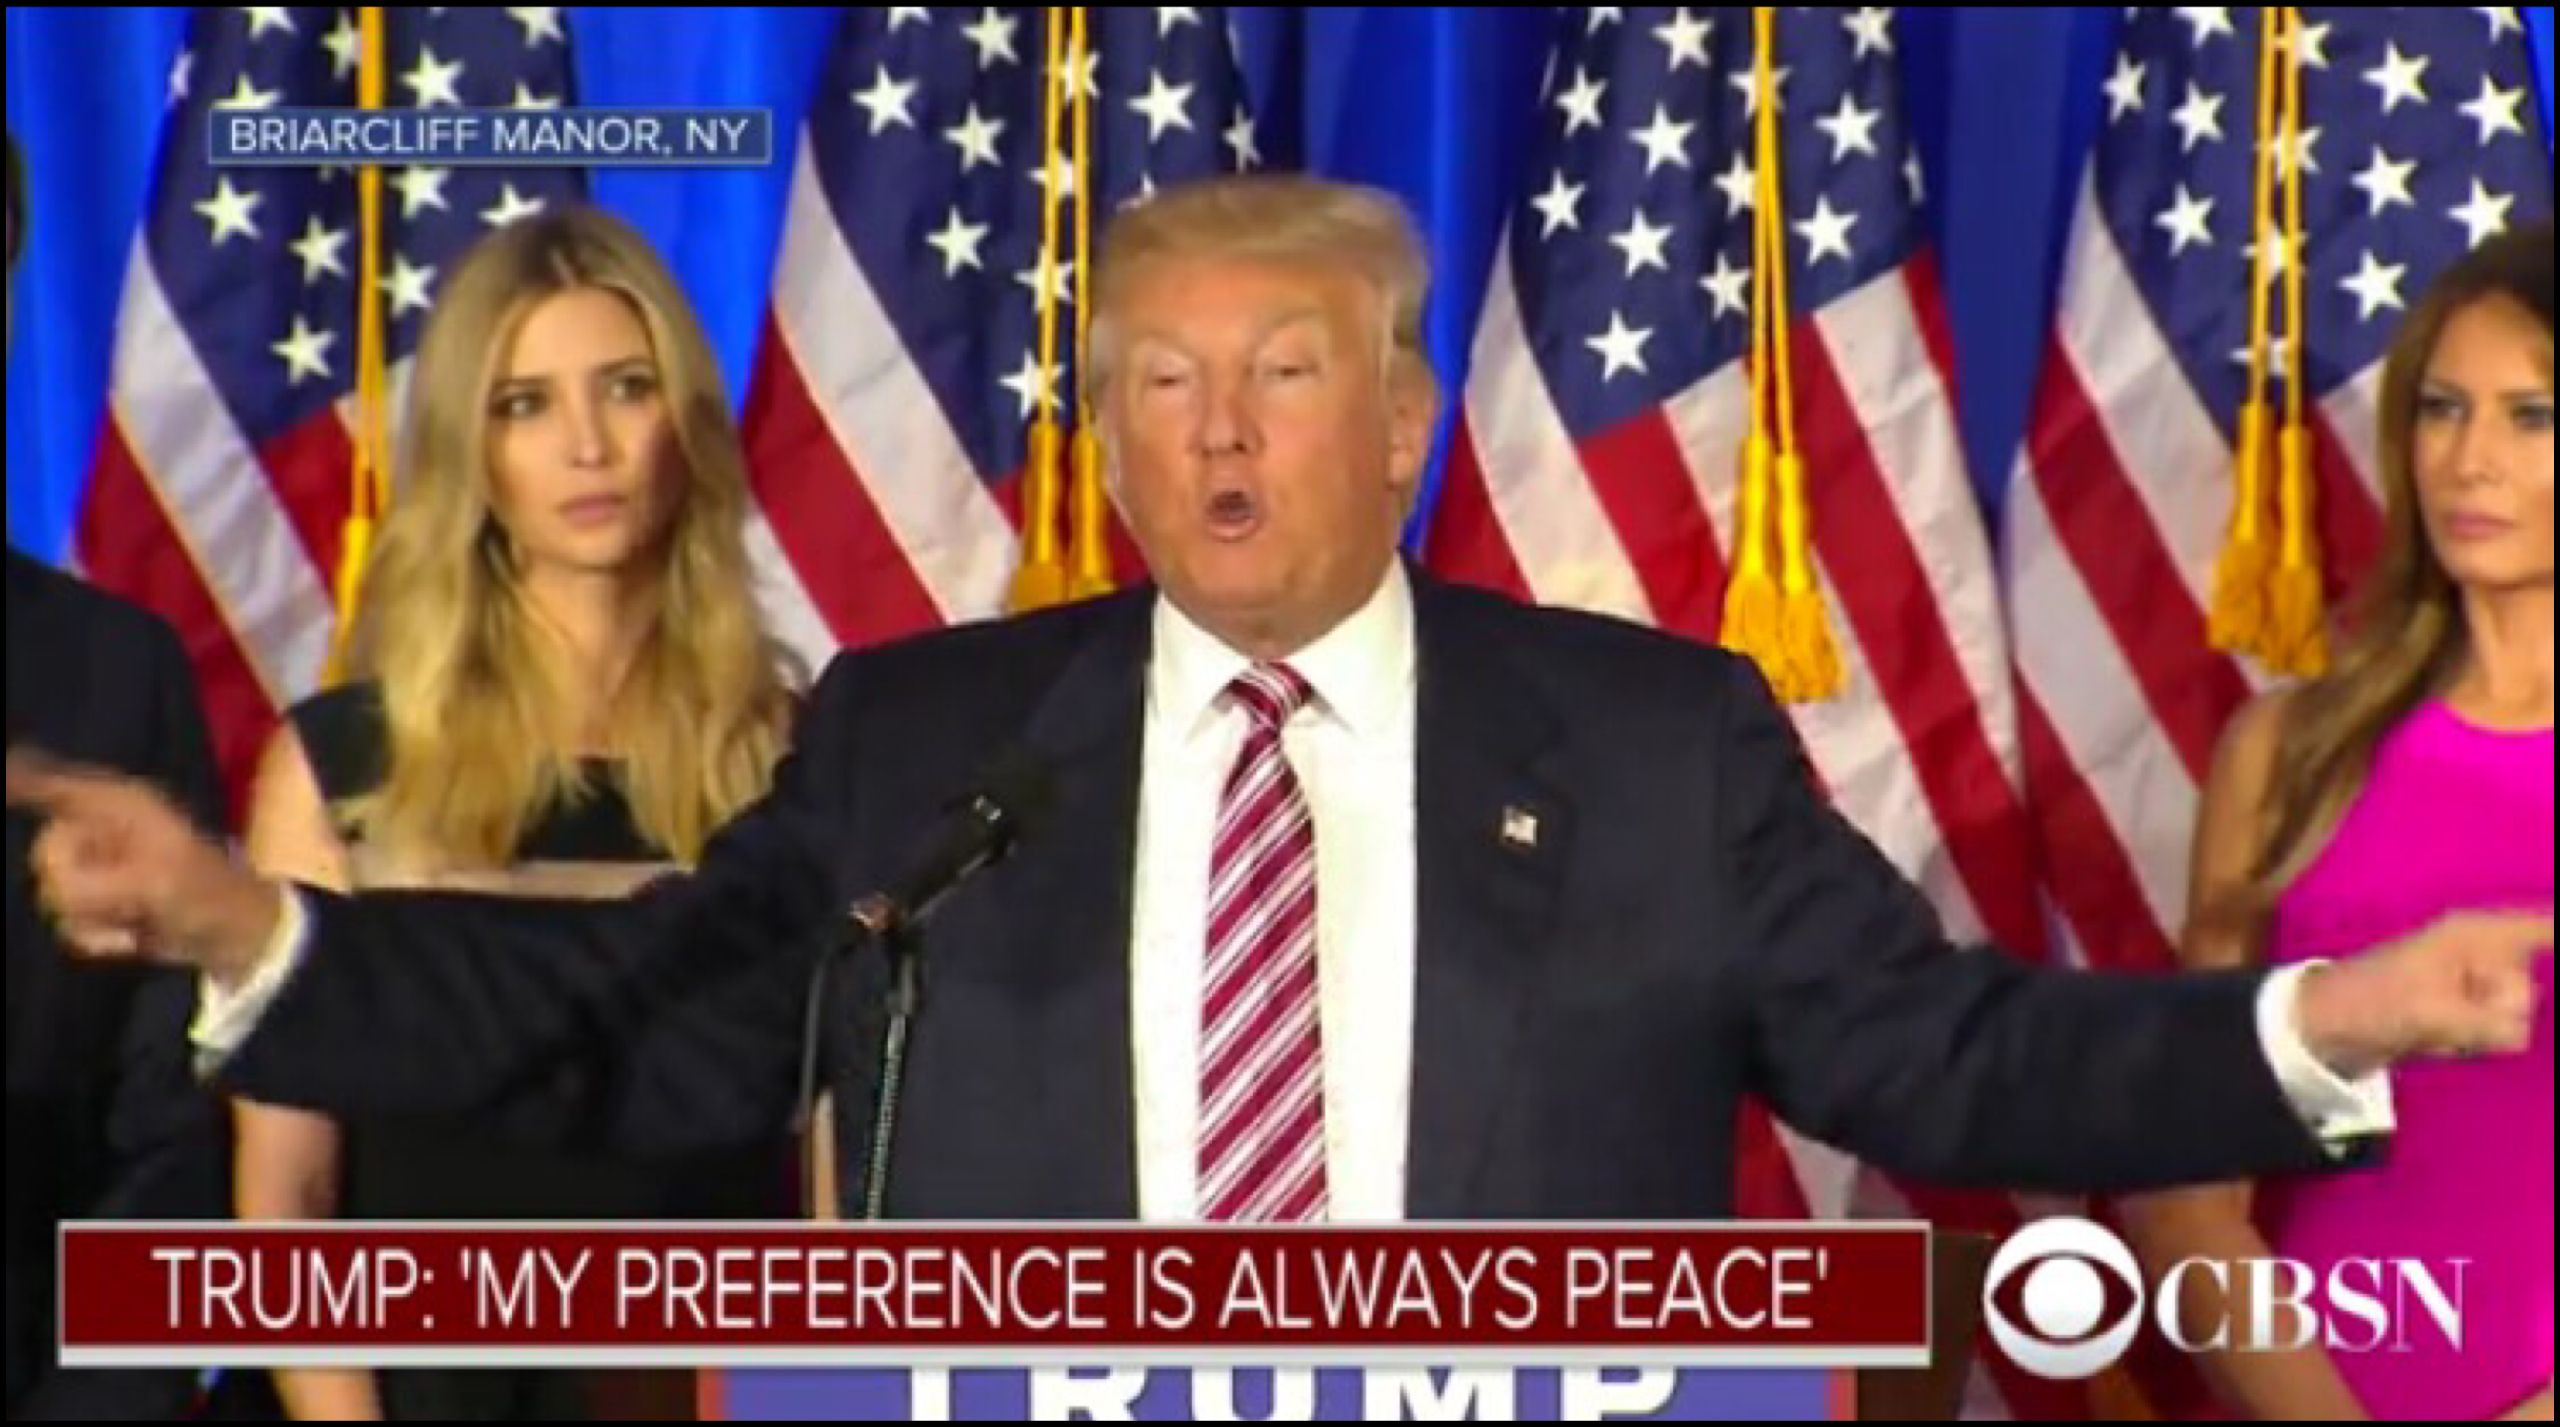 My preference is always peace . . . | Donald Trump addresses his supporters from Briarcliff Manor, NY on June 8, 2016